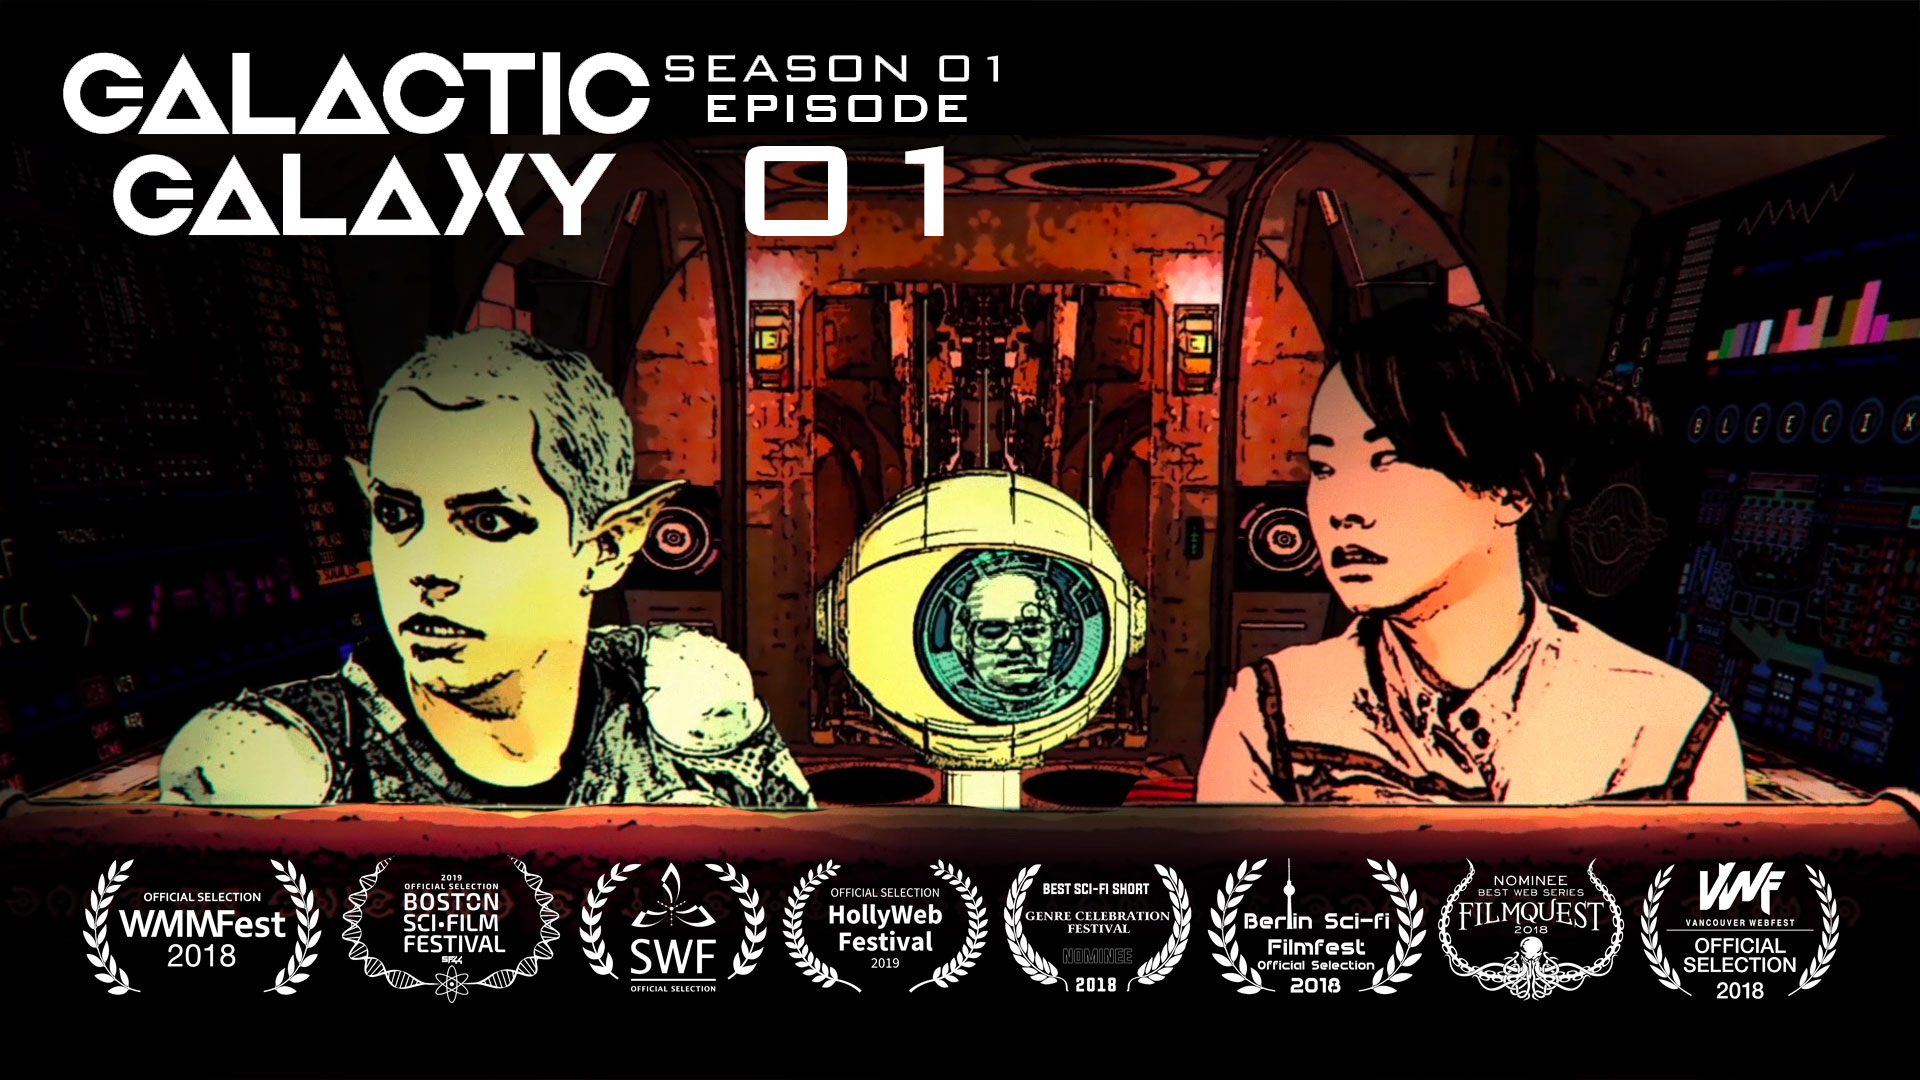 Galactic Galaxy 01: The Journey of a Thousand Parsecs